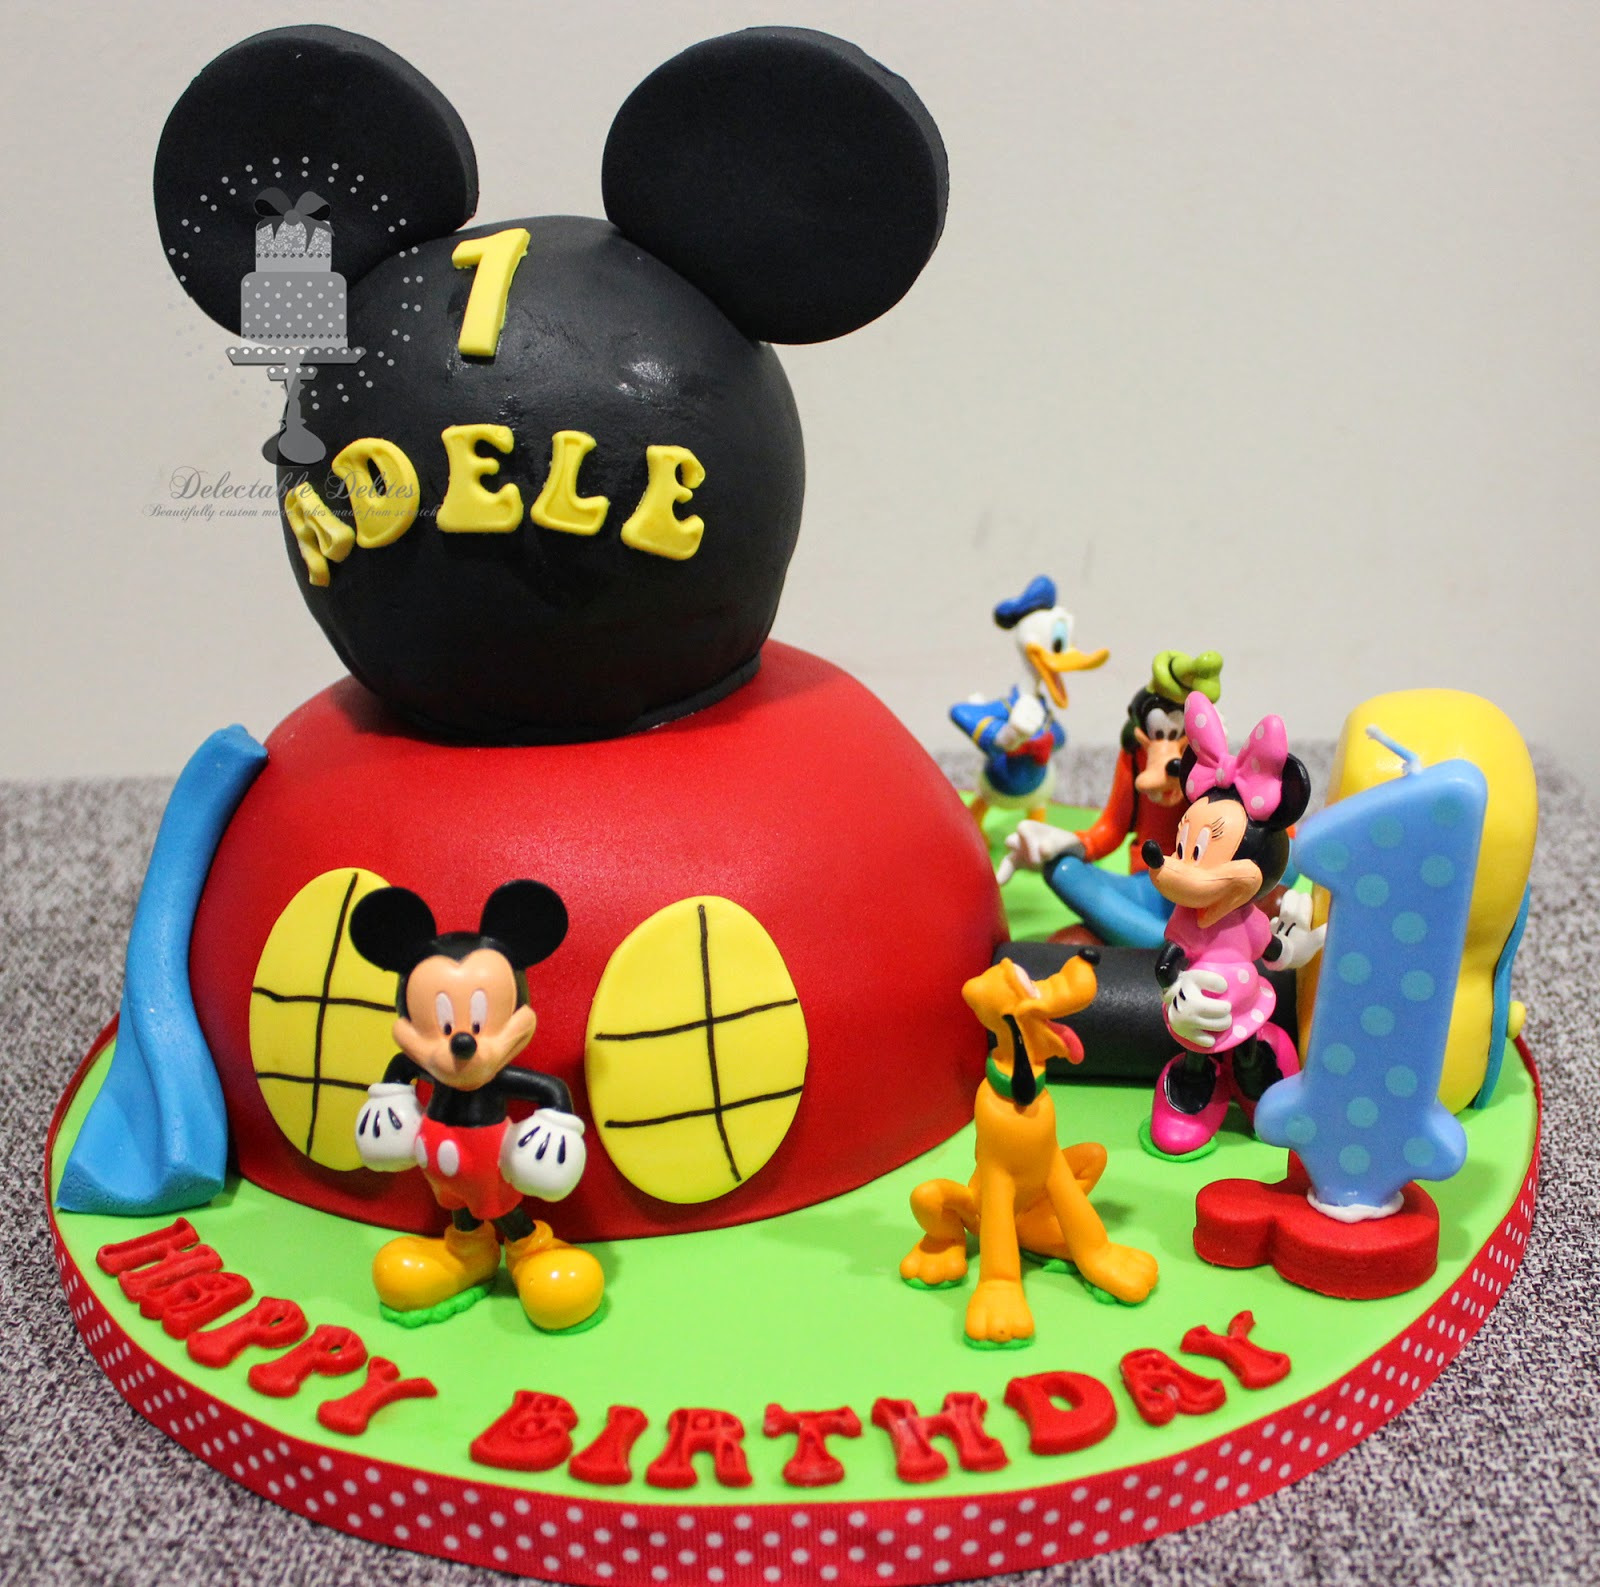 Delectable Delites Mickey Mouse Clubhouse Cake For Adele